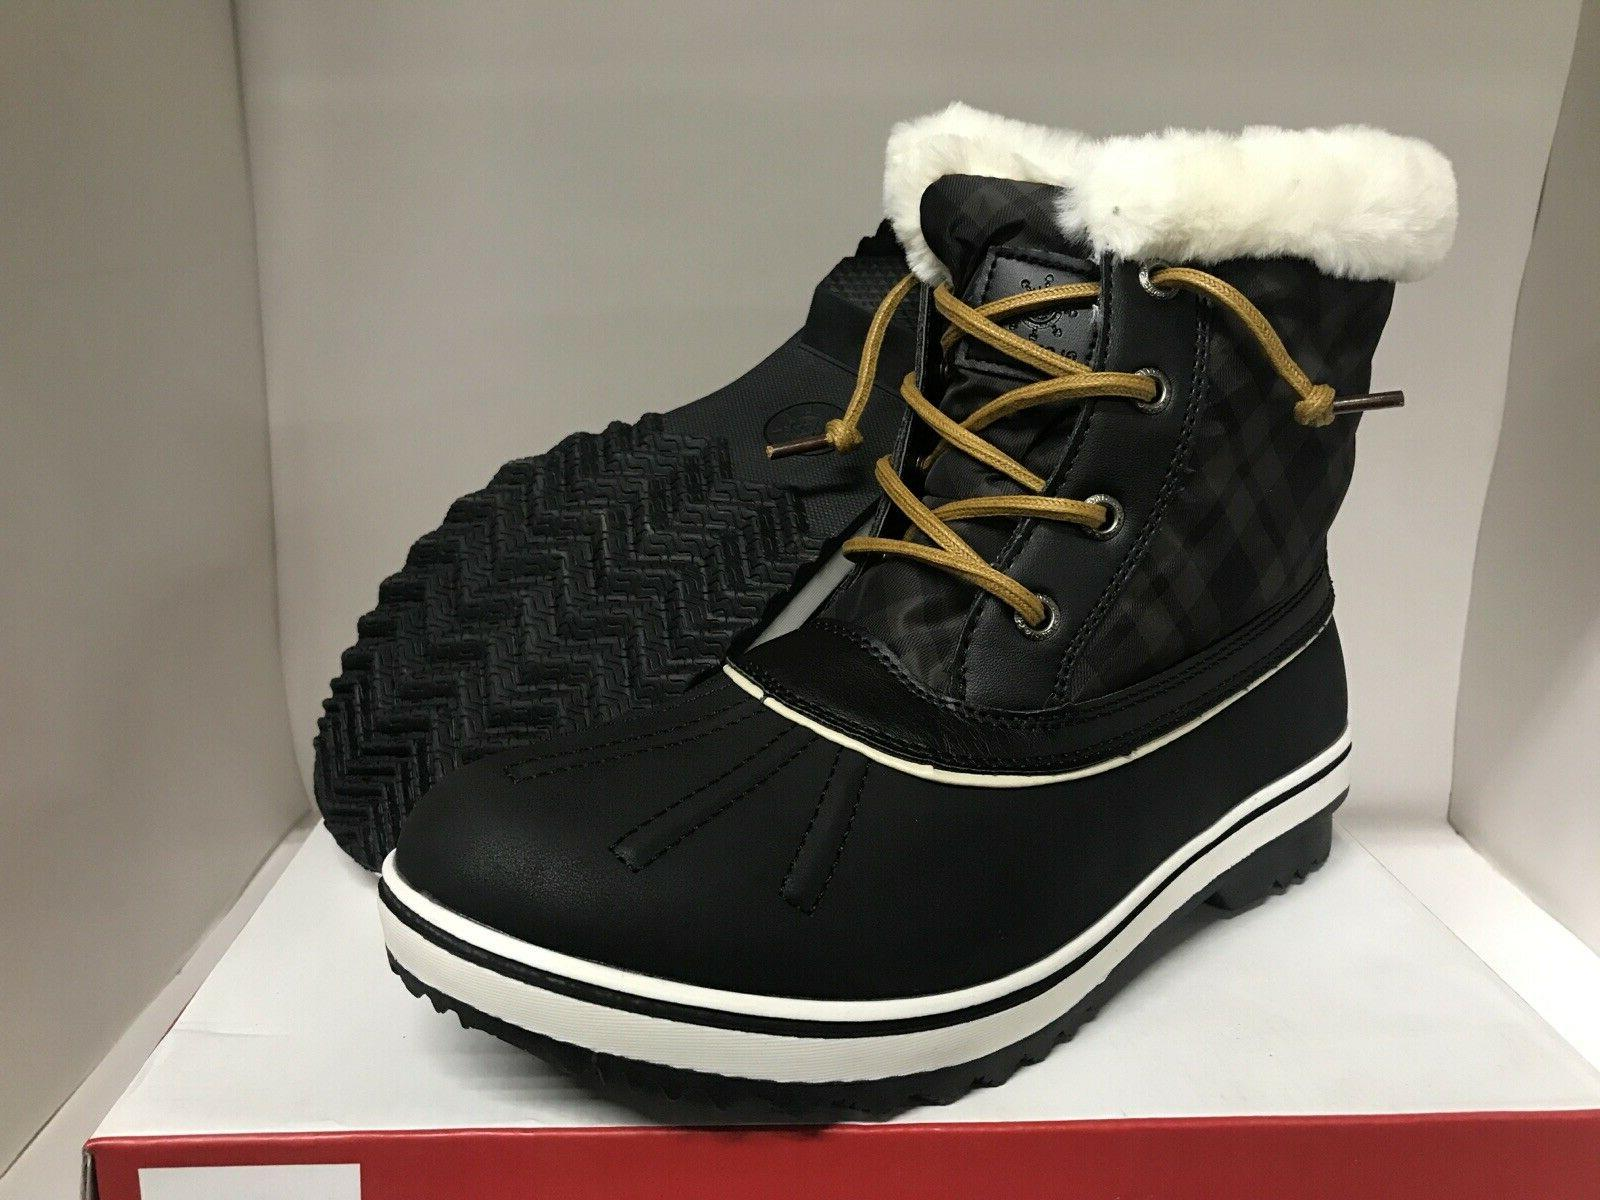 Globalwin Winter Snow Boots Black Size